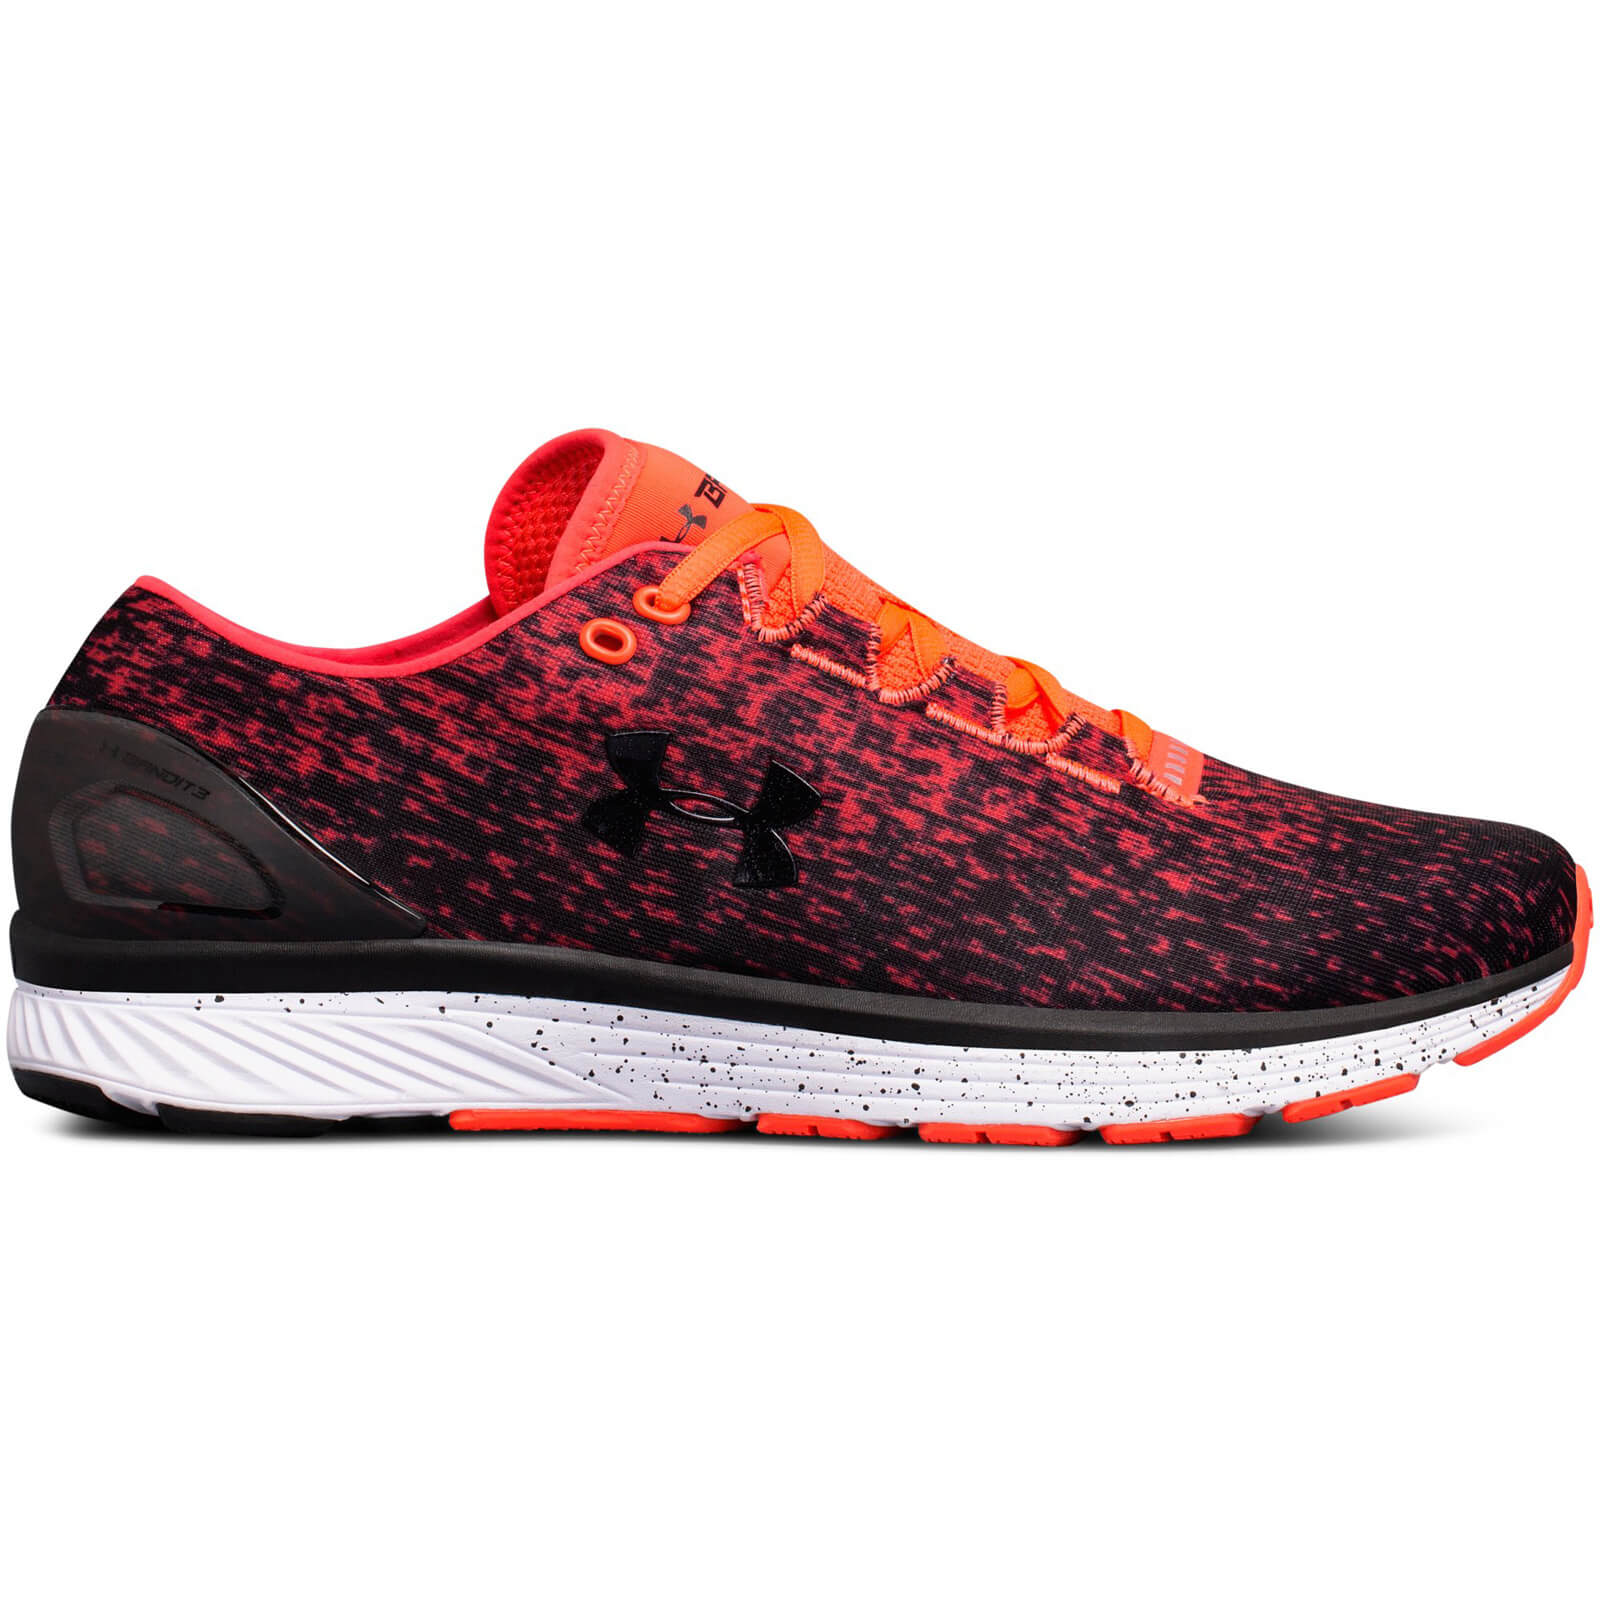 3d030f721bfd Under Armour Men s Charged Bandit 3 Ombre Running Shoes - Red ...